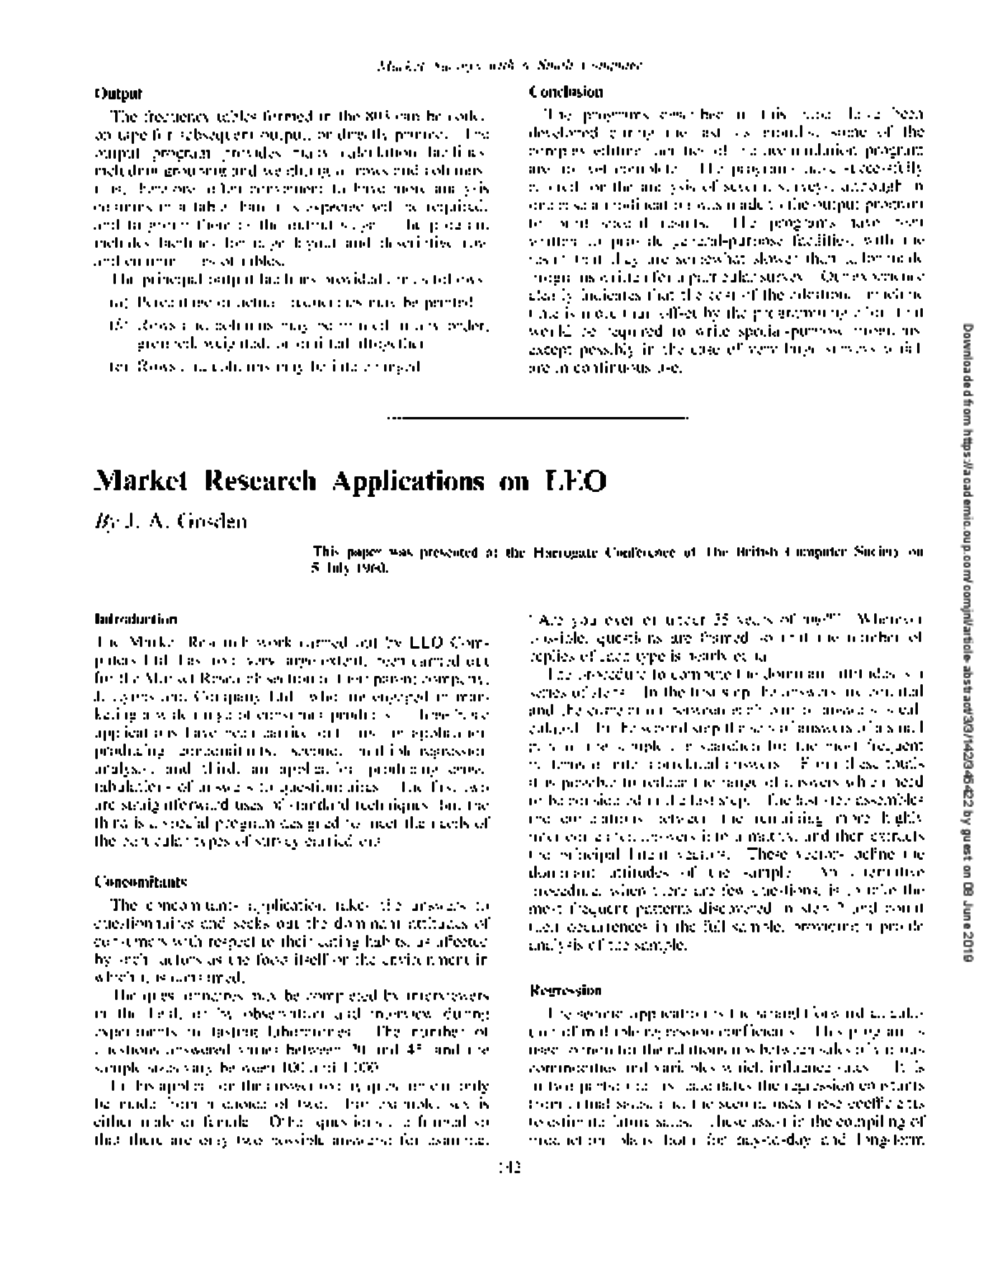 Article: Market Research Applications on LEO